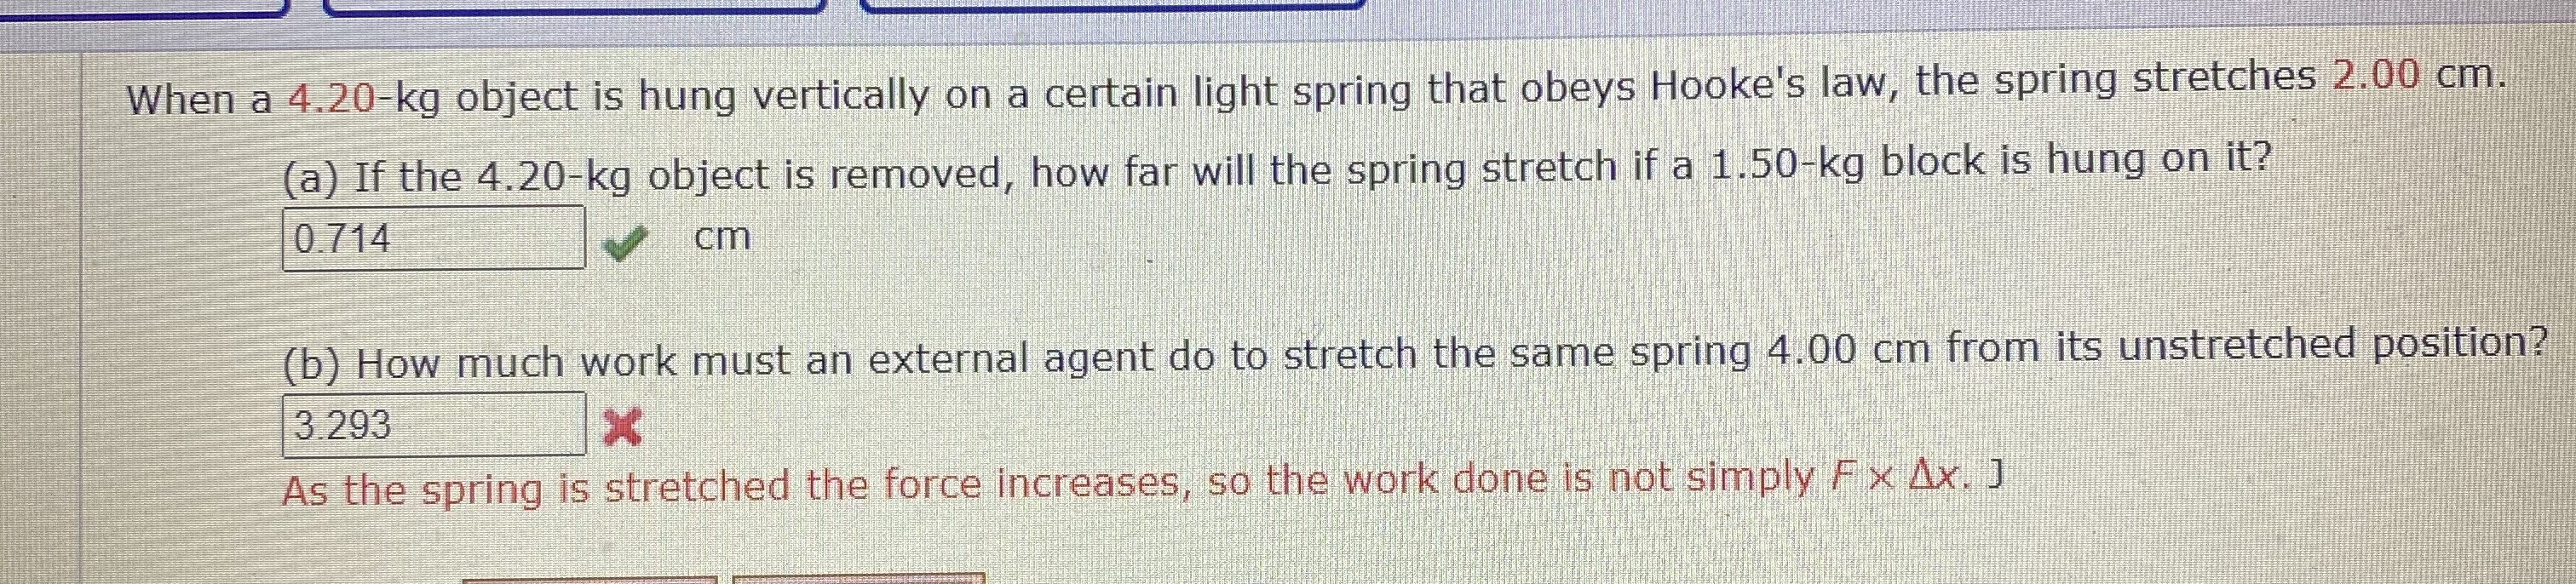 When a 4.20-kg object is hung vertically on a certain light spring that obeys Hooke's law, the spring stretches 2.00 cm. (a) If the 4.20-kg object is removed, how far will the spring stretch if a 1.50-kg block is hung on it? 0.714 cm (b) How much work must an external agent do to stretch the same spring 4.00 cm from its unstretched position? 3.293